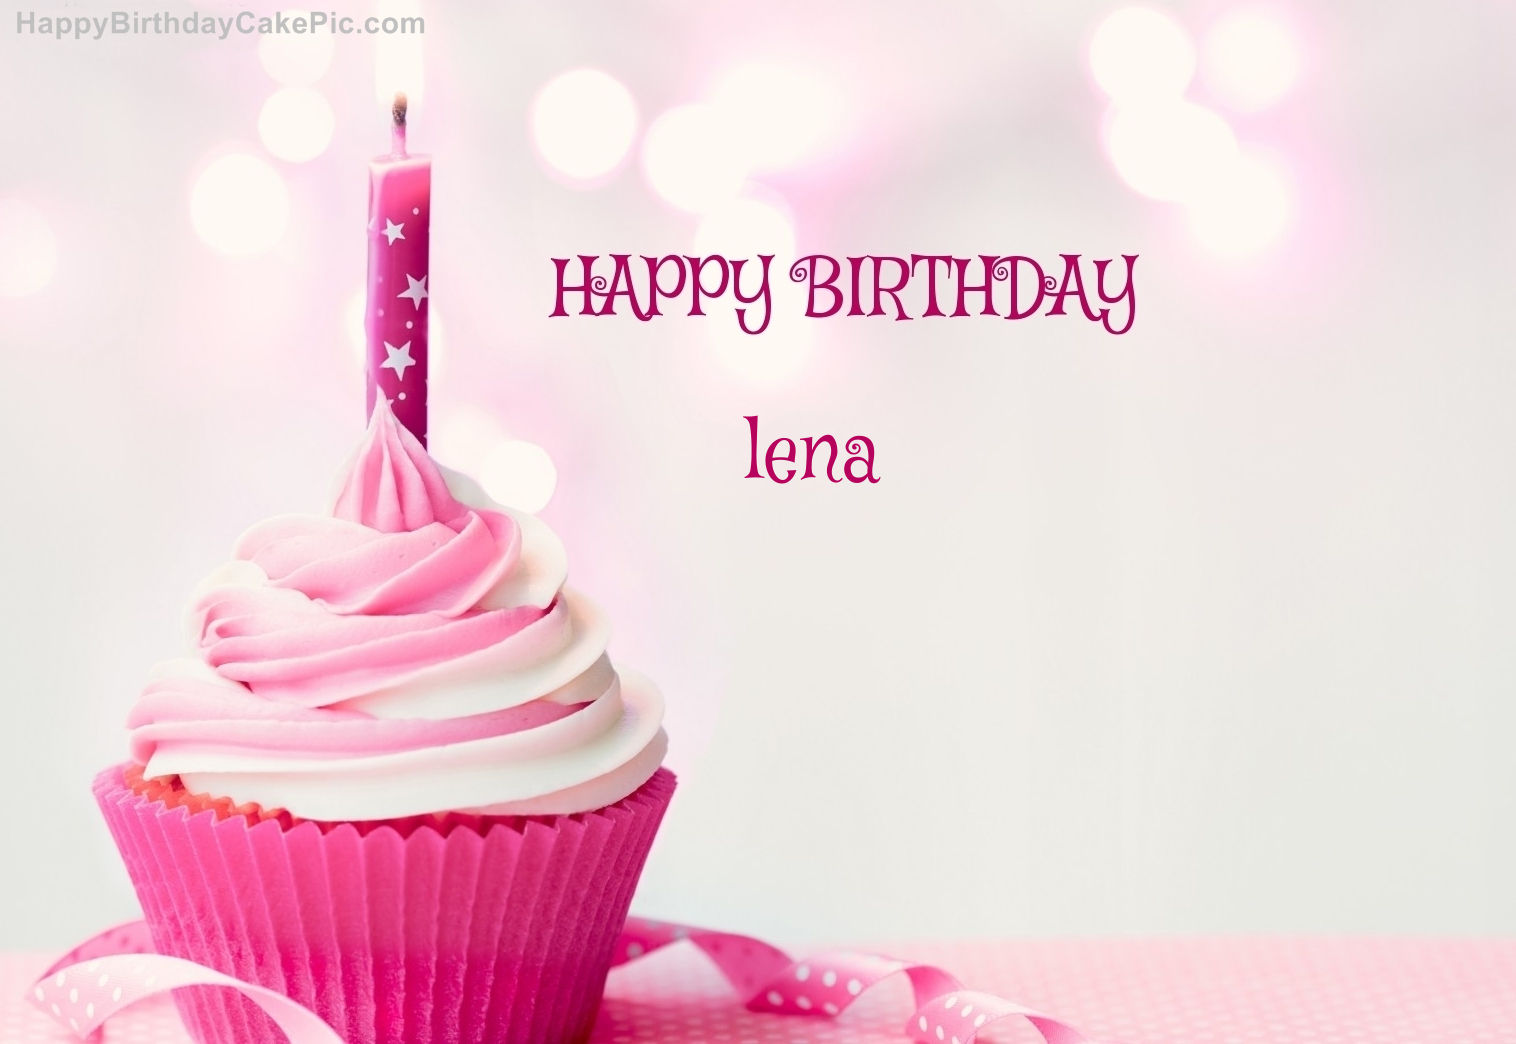 ️ Happy Birthday Cupcake Candle Pink Cake For Lena